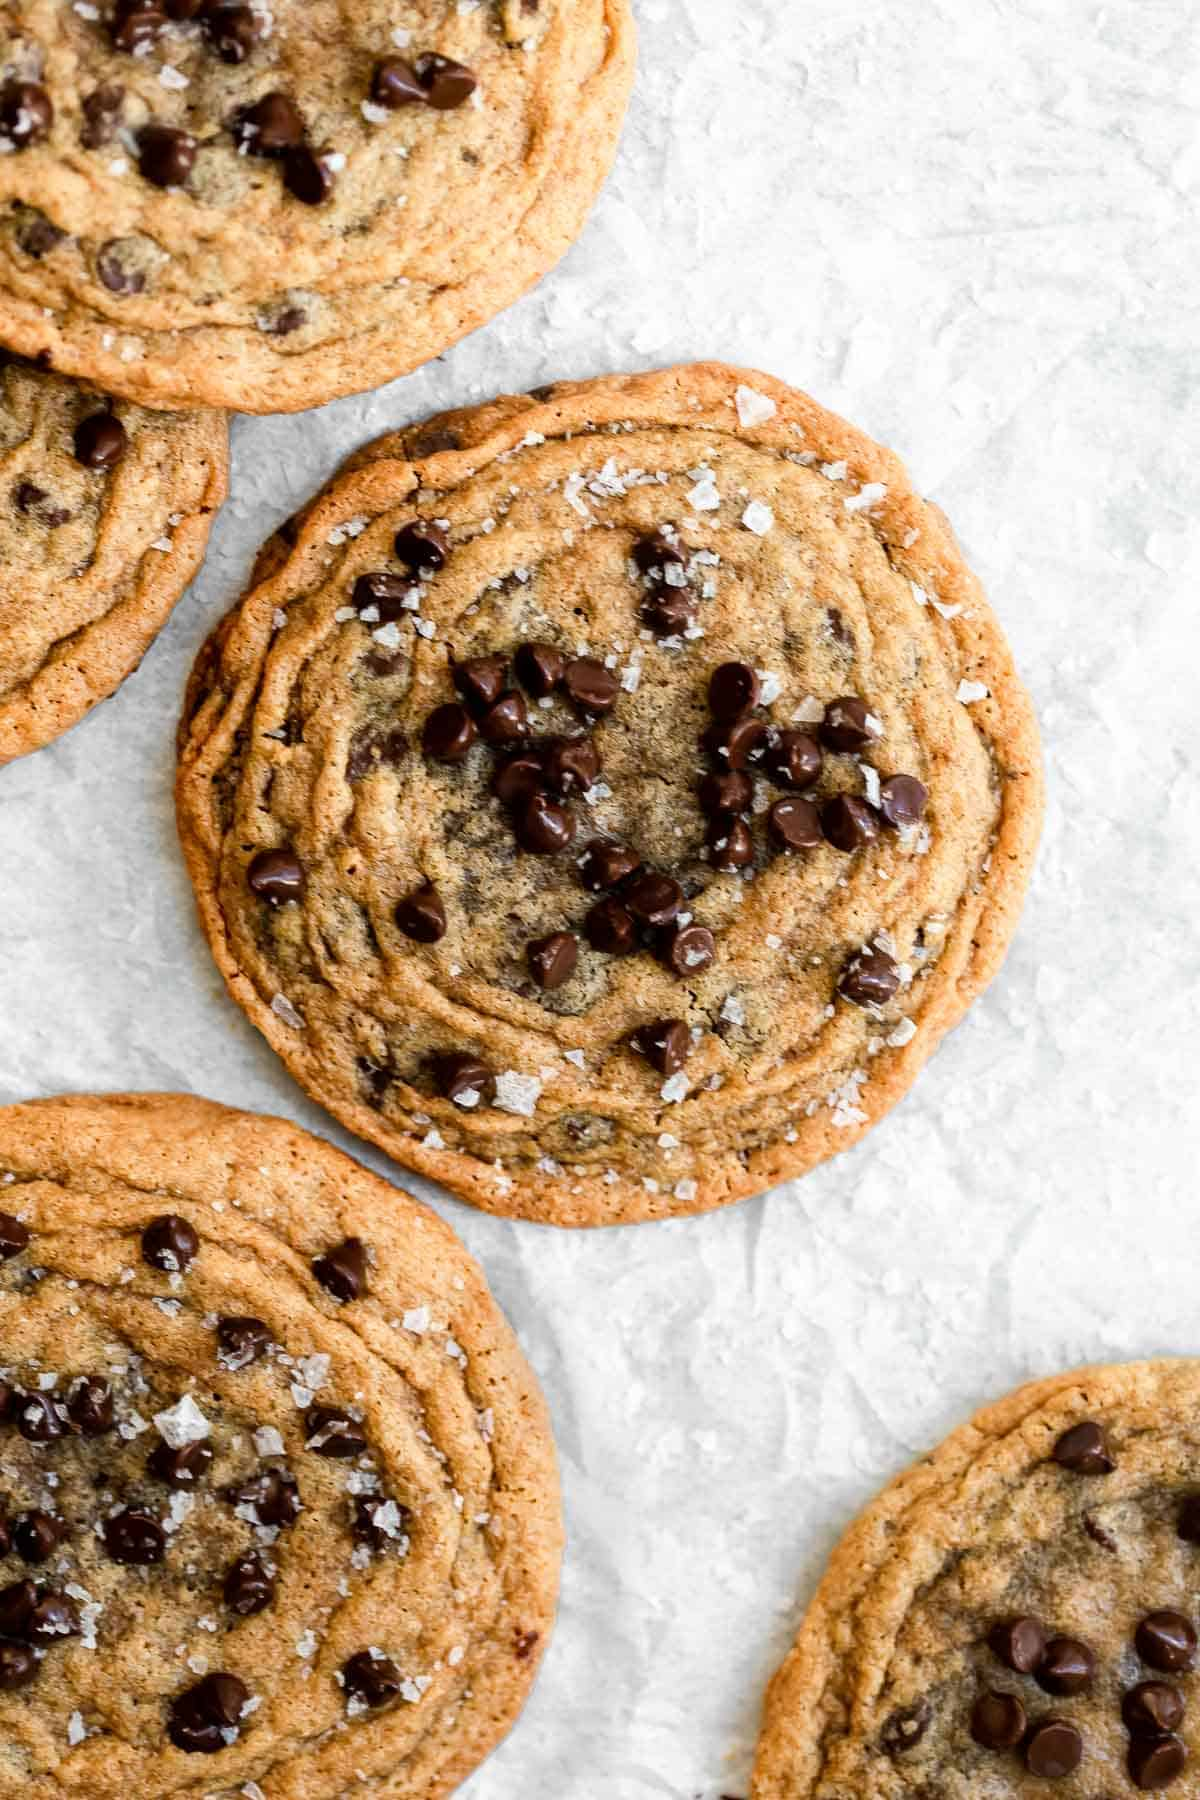 Overhead shot of cookies arranged on a white backdrop with chocolate sprinkled on top.